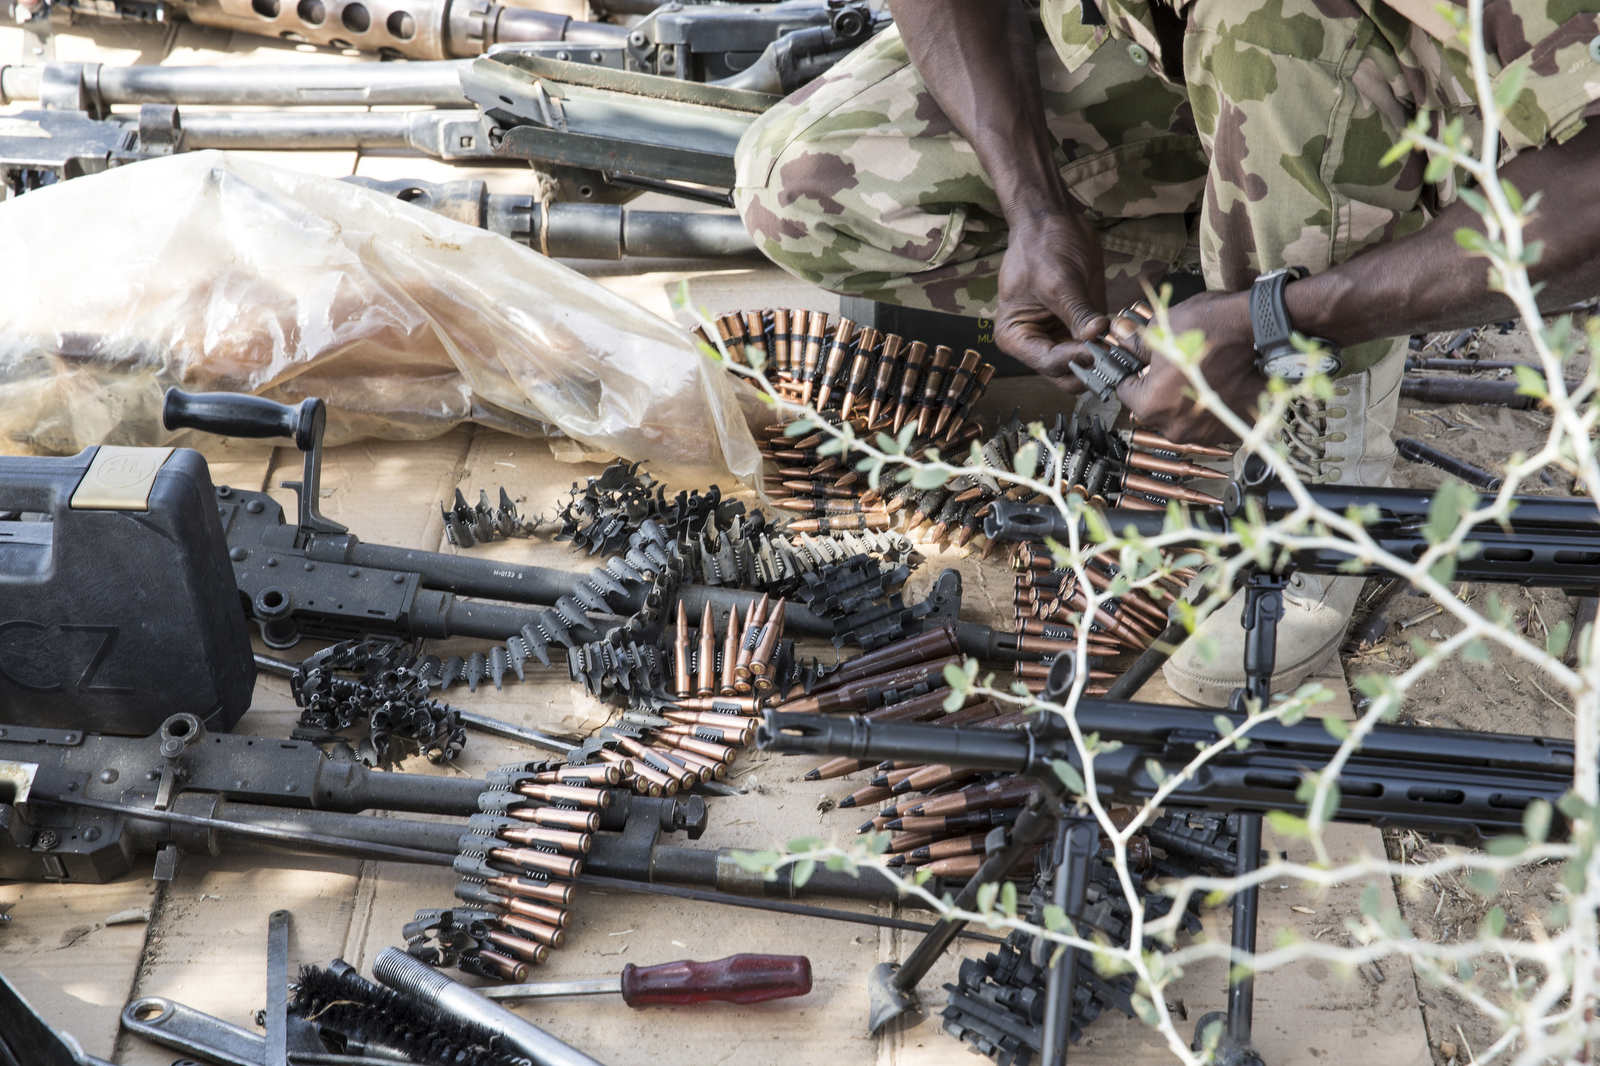 A solider organizes bullets and magazines on the shooting range at Theater Command, the base of the Nigerian military in Borno State.